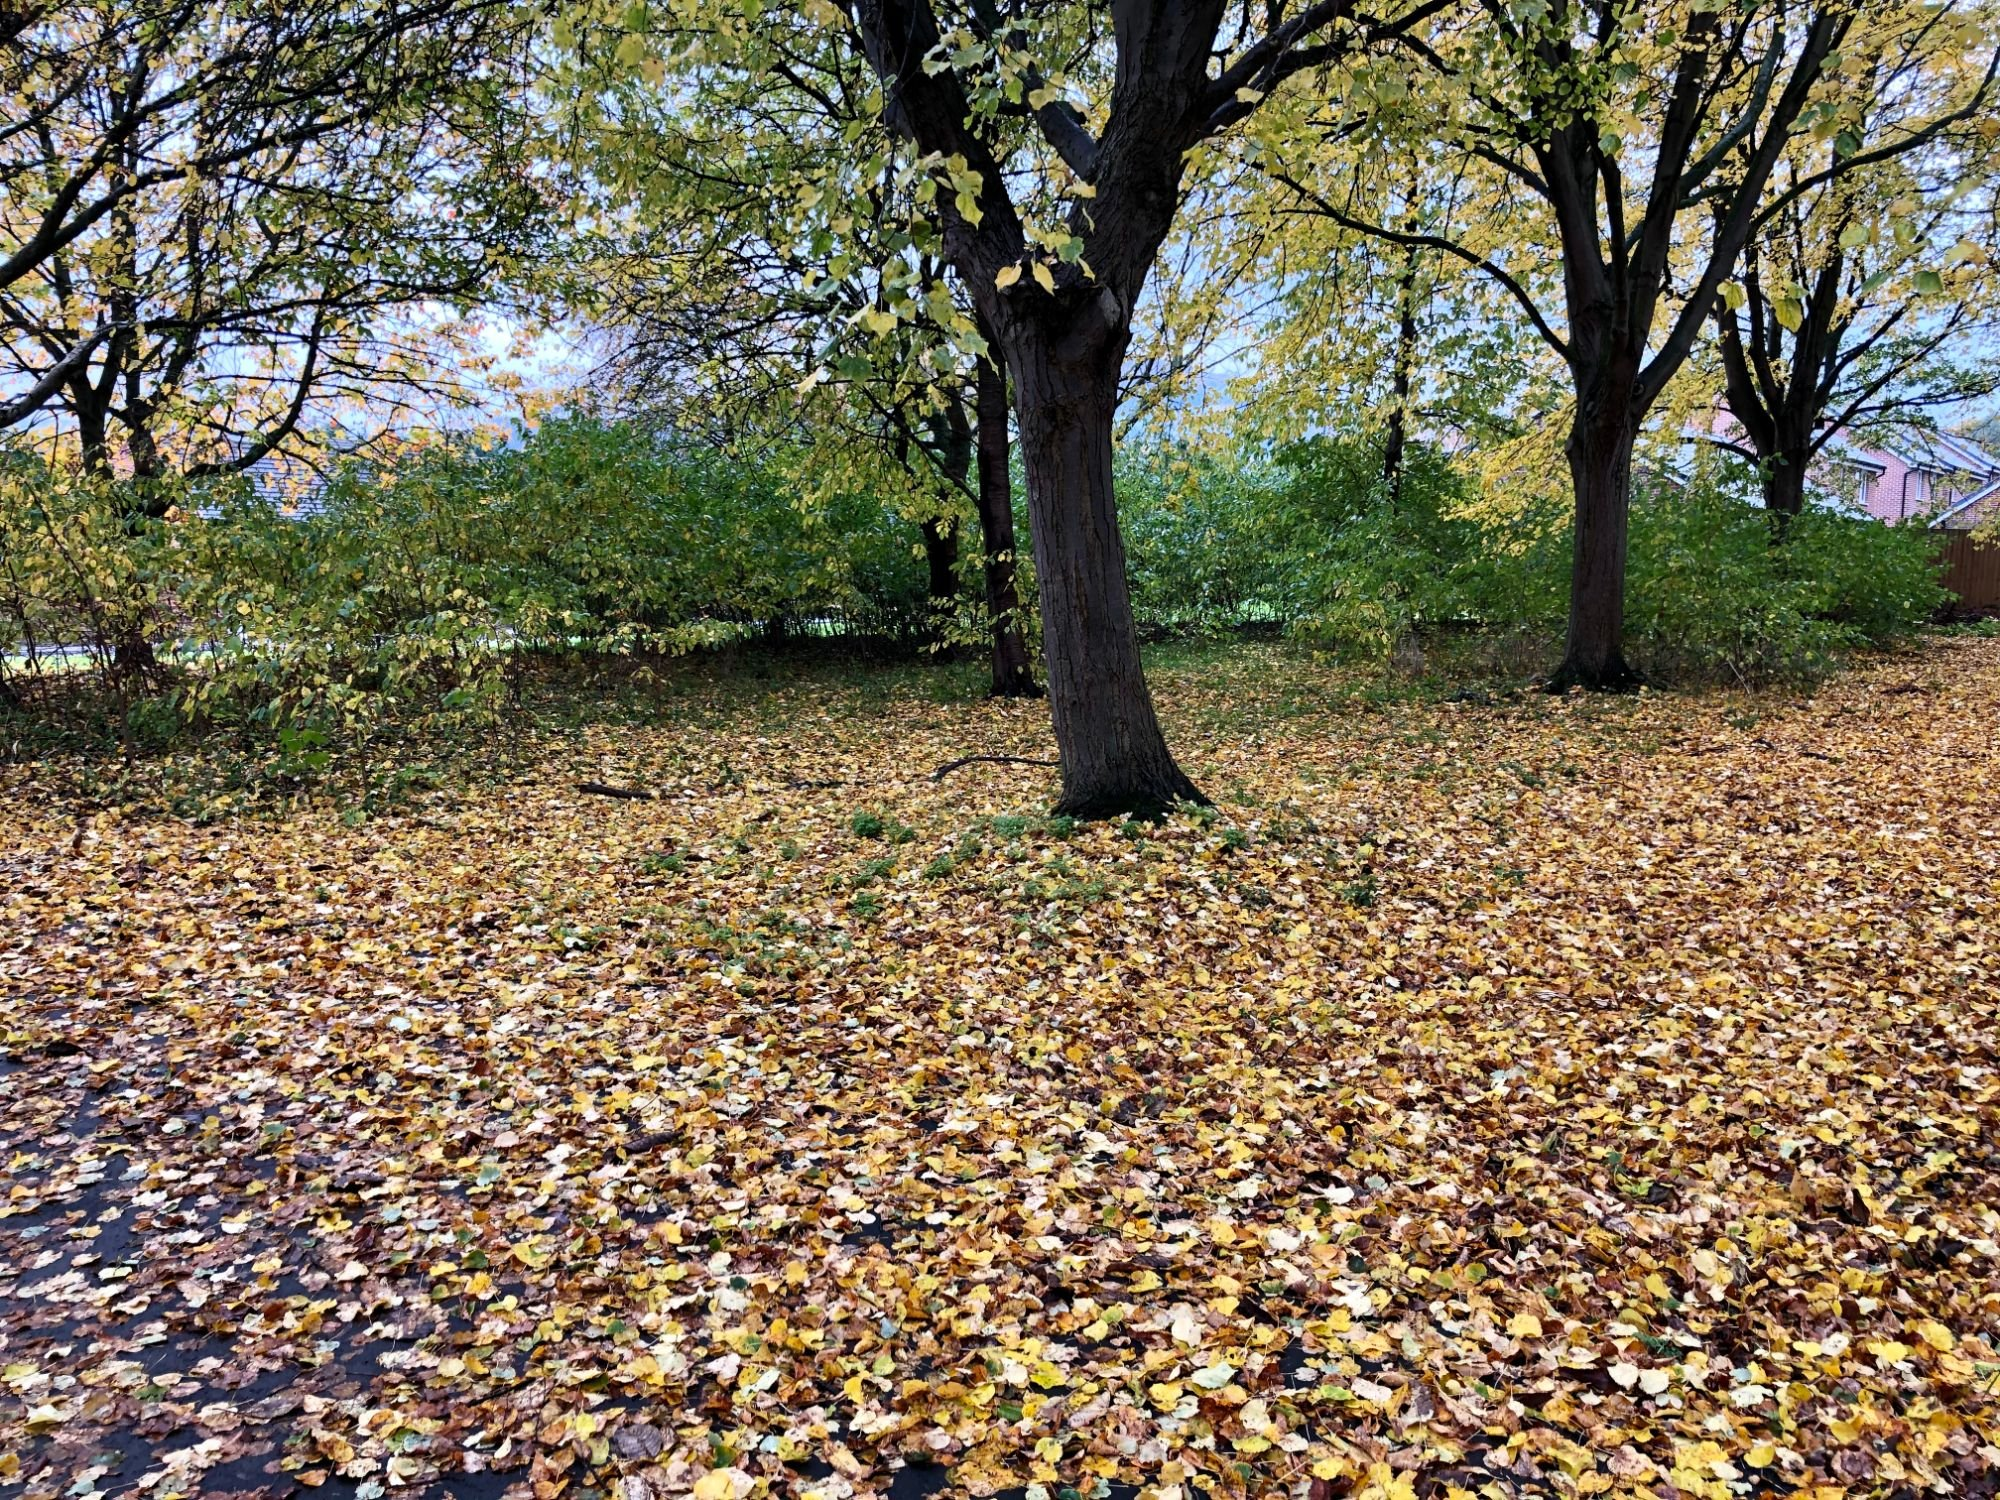 Free stock photo tree changing leaves colours autumn falling fallen